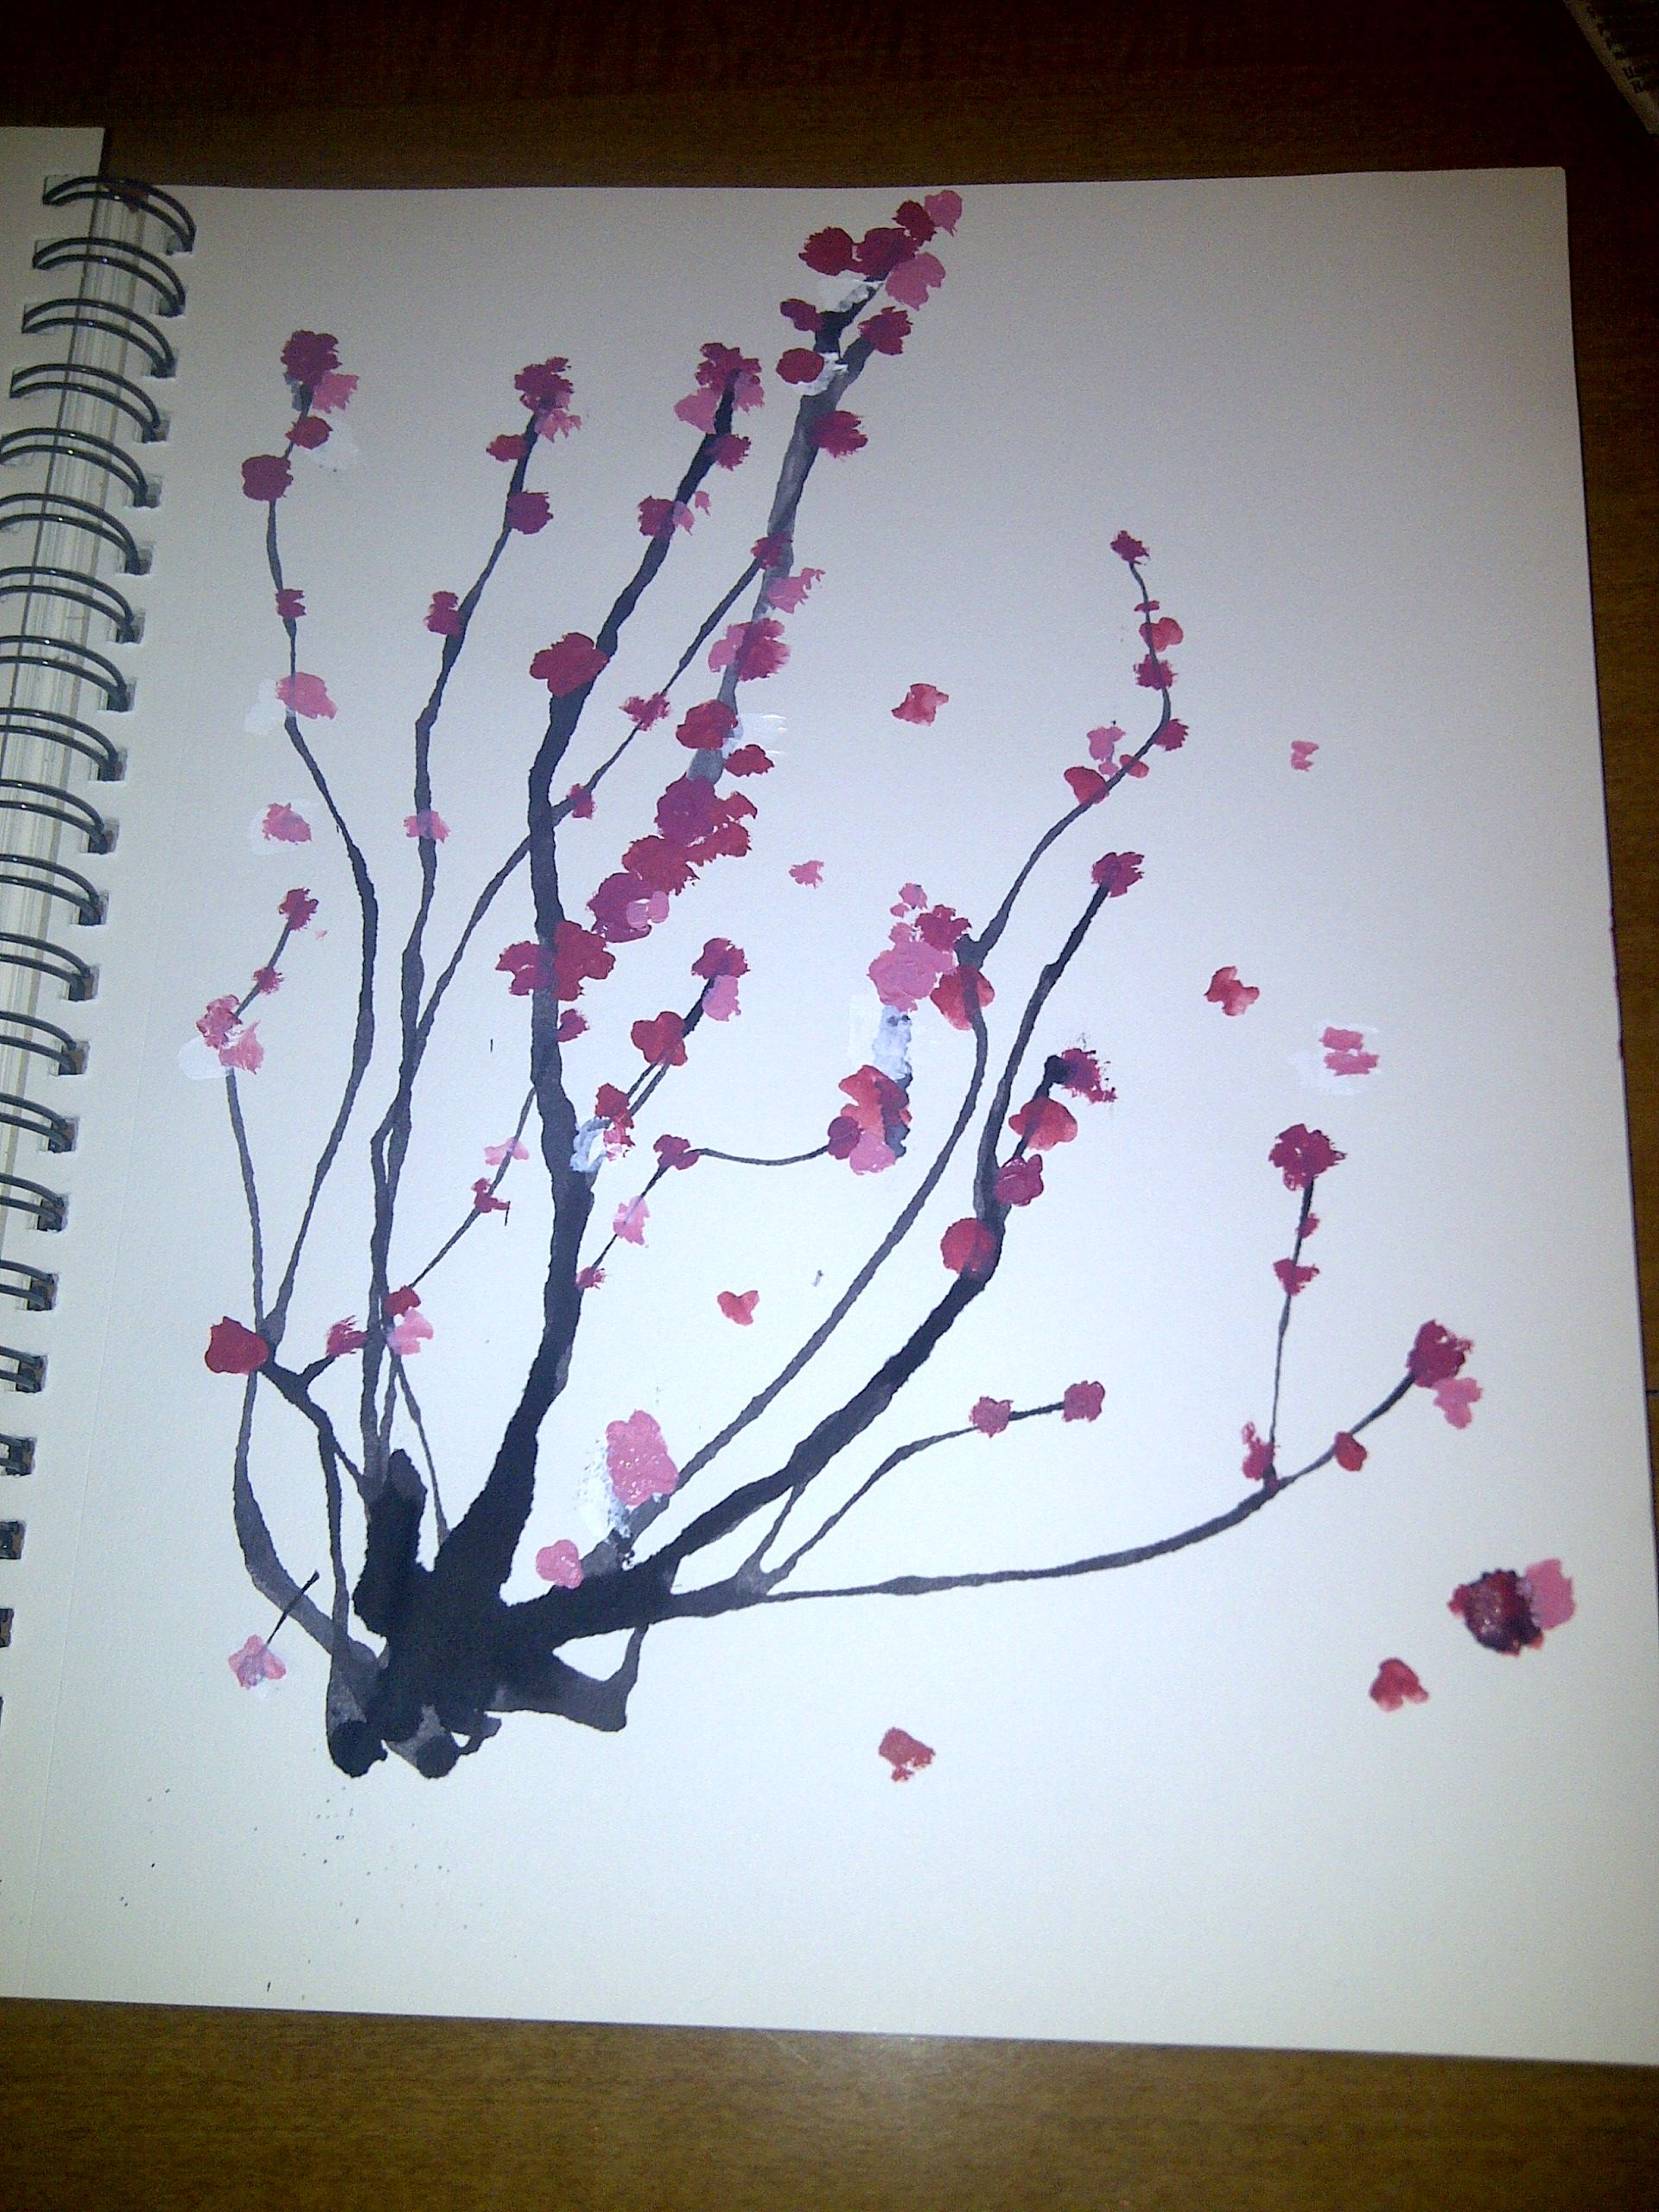 Japanese Cherry Blossom Tree Abstract Flower Painting Japanese Artwork Japanese Woodblock Printing